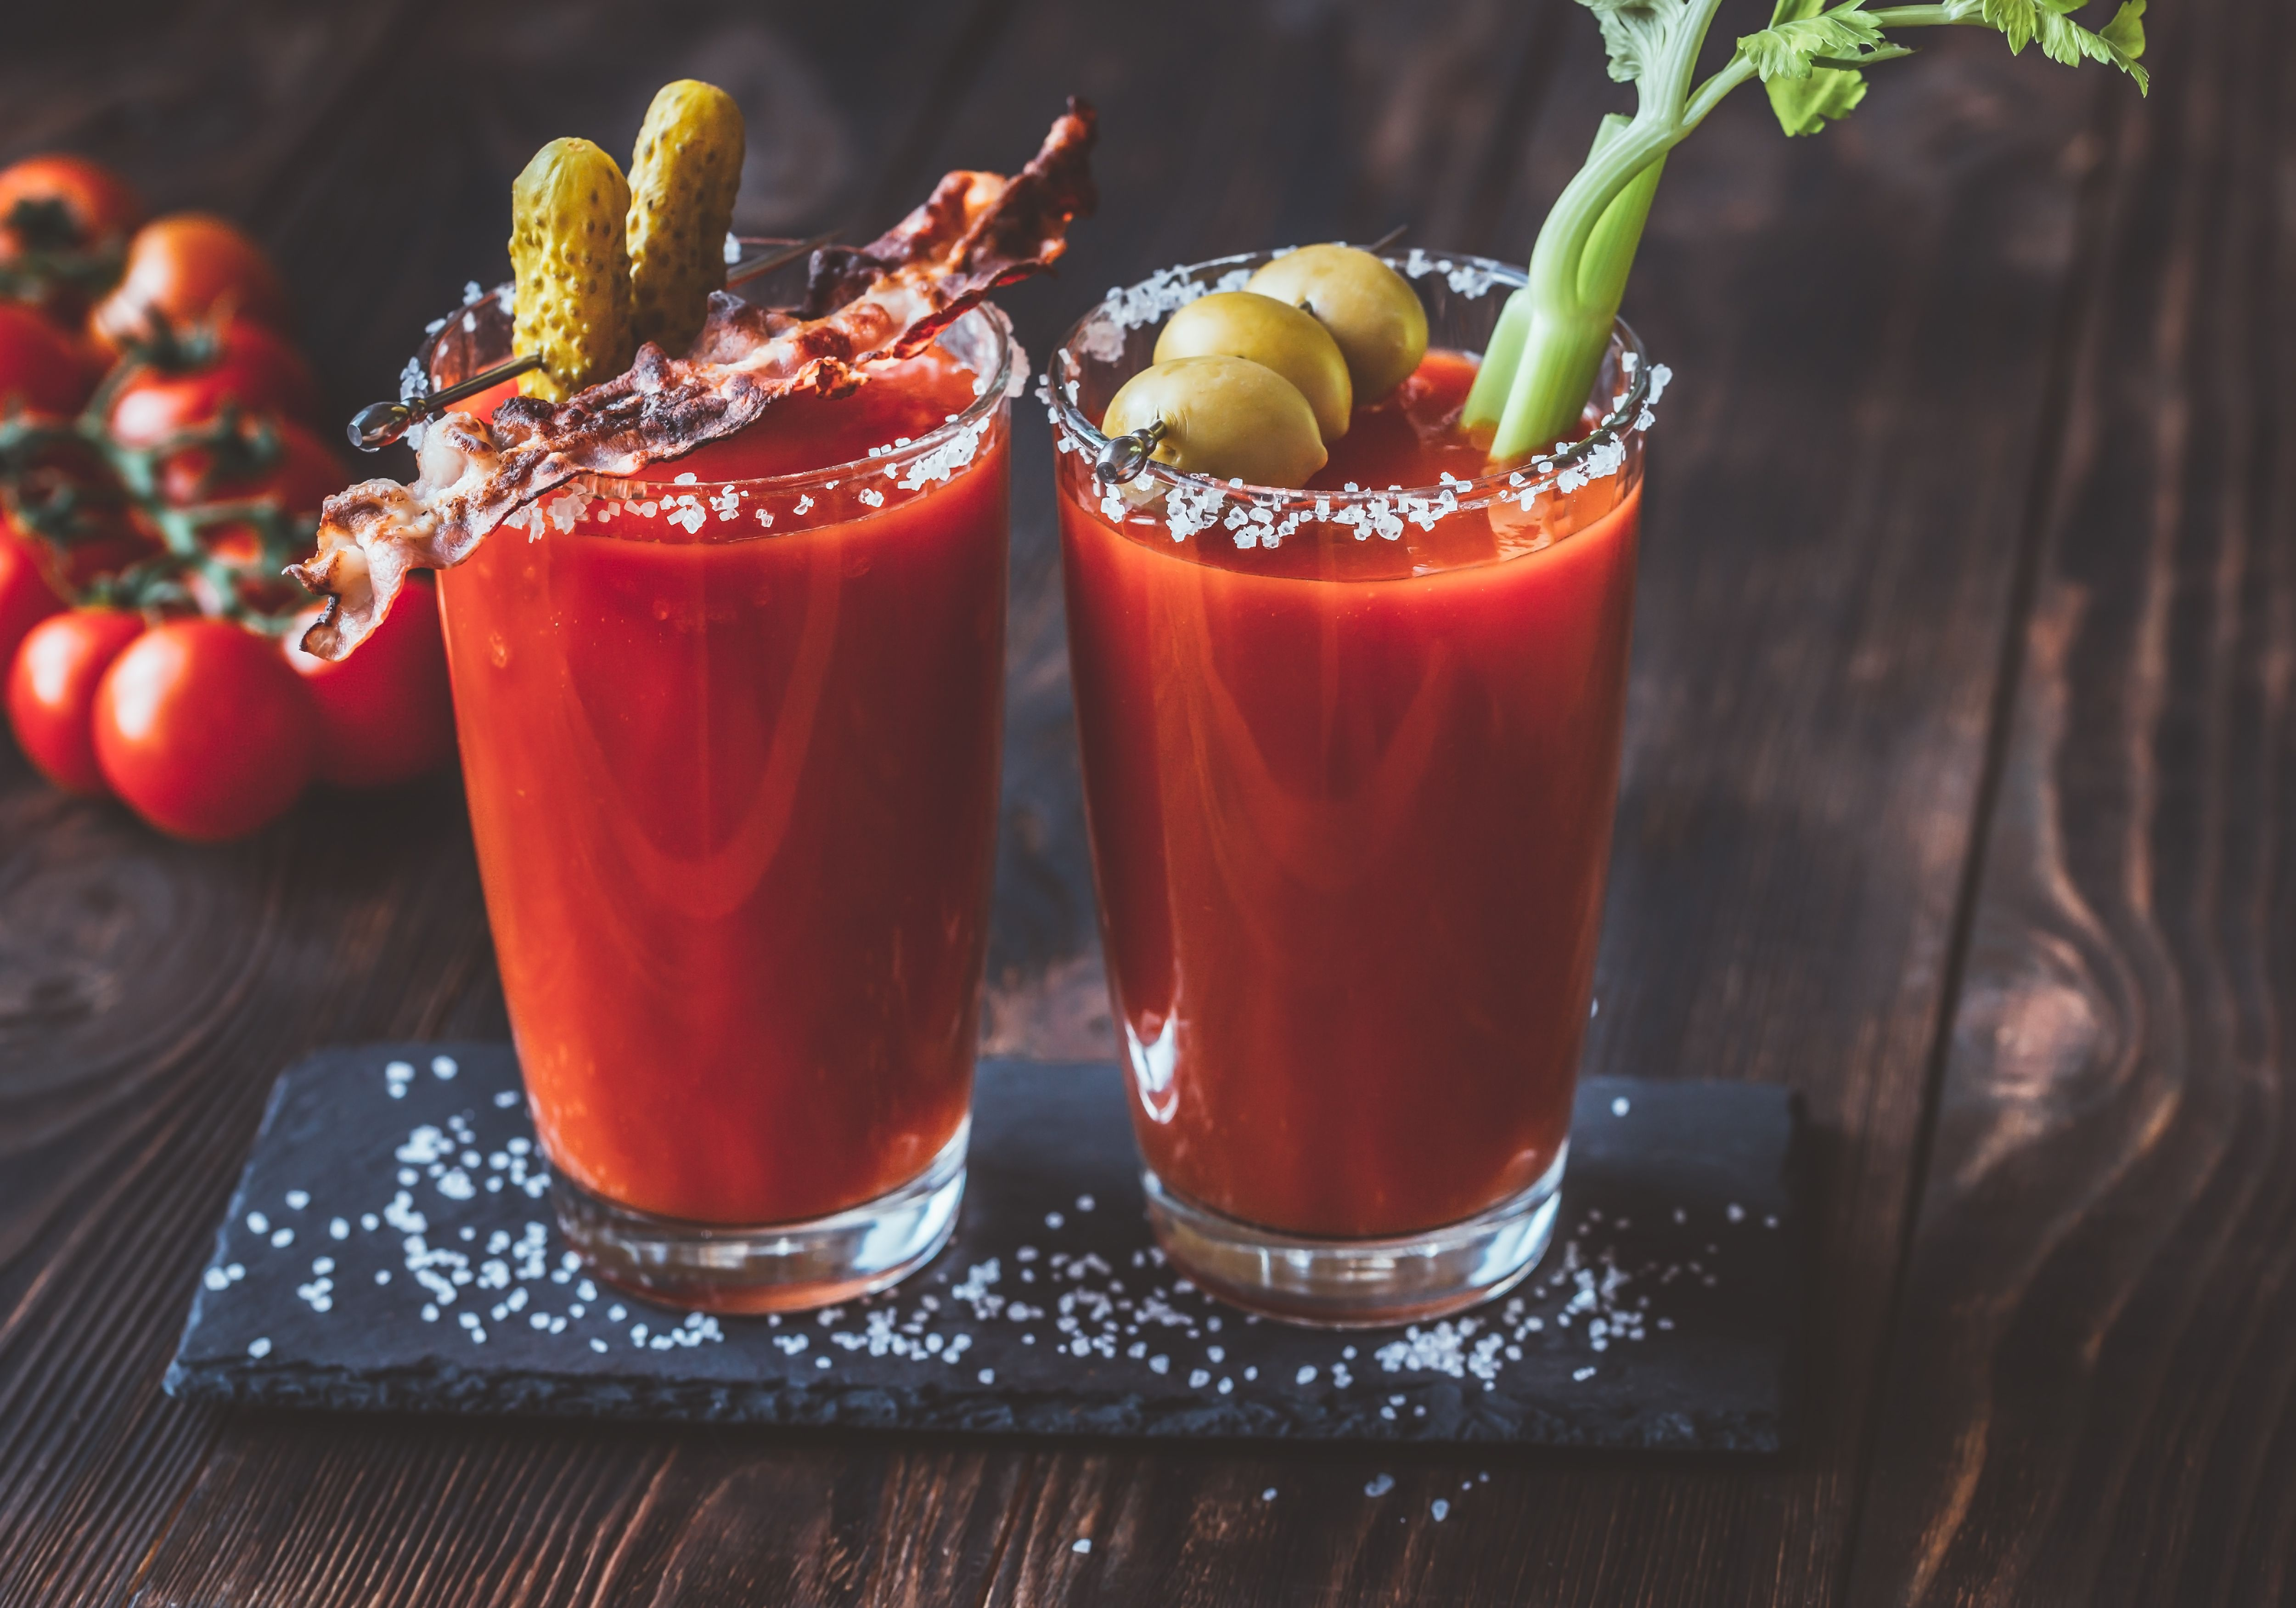 Best Bloody Mary Recipe - How To Make The Perfect Bloody Mary